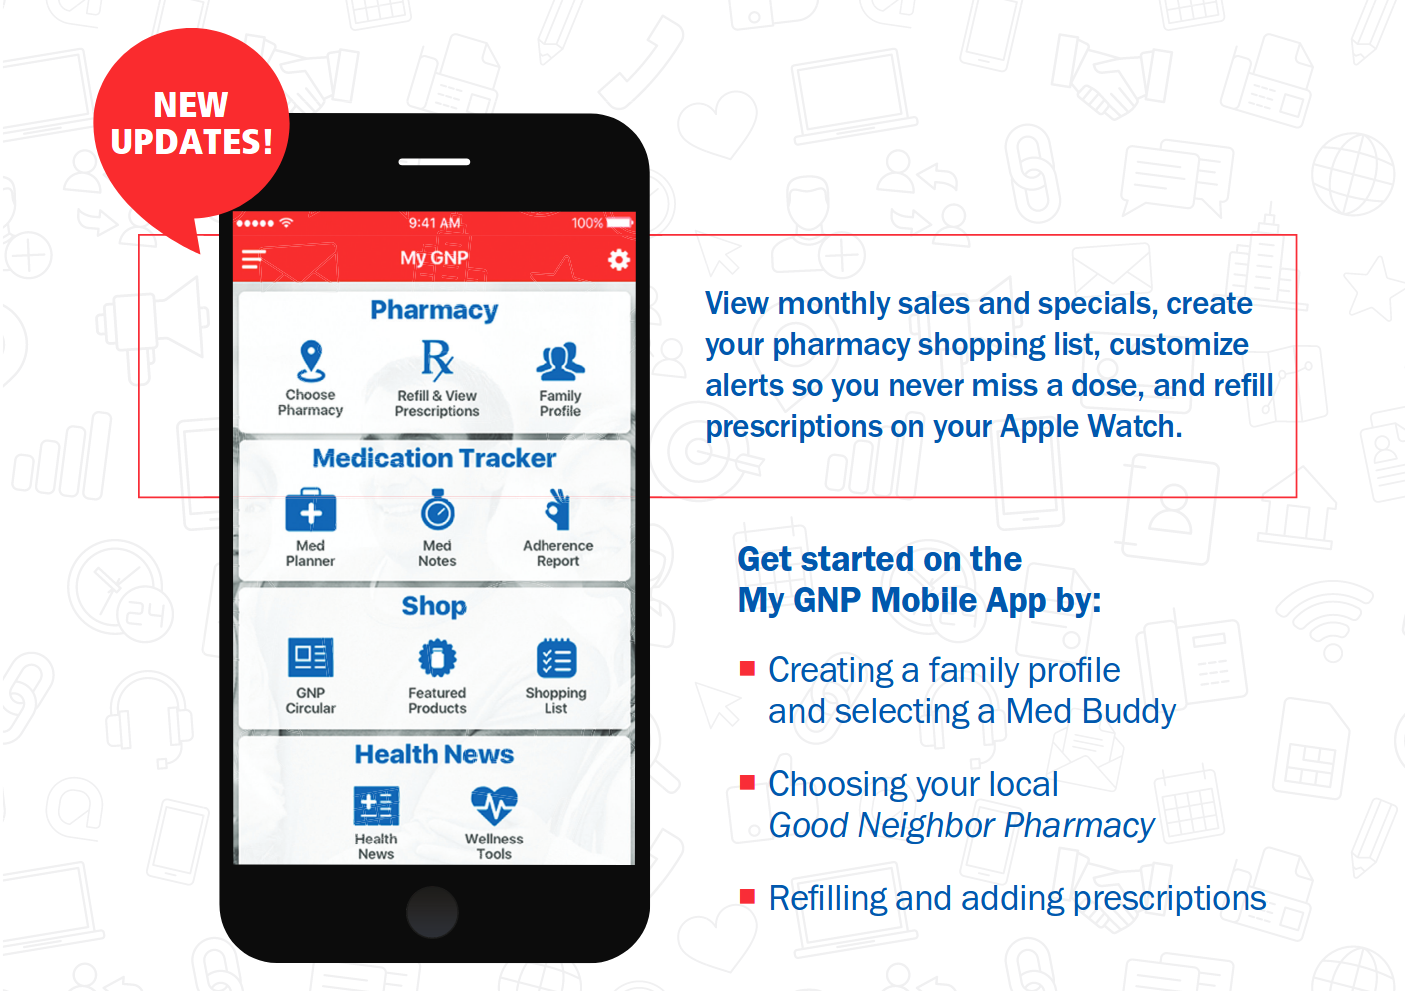 Download the My GNP app